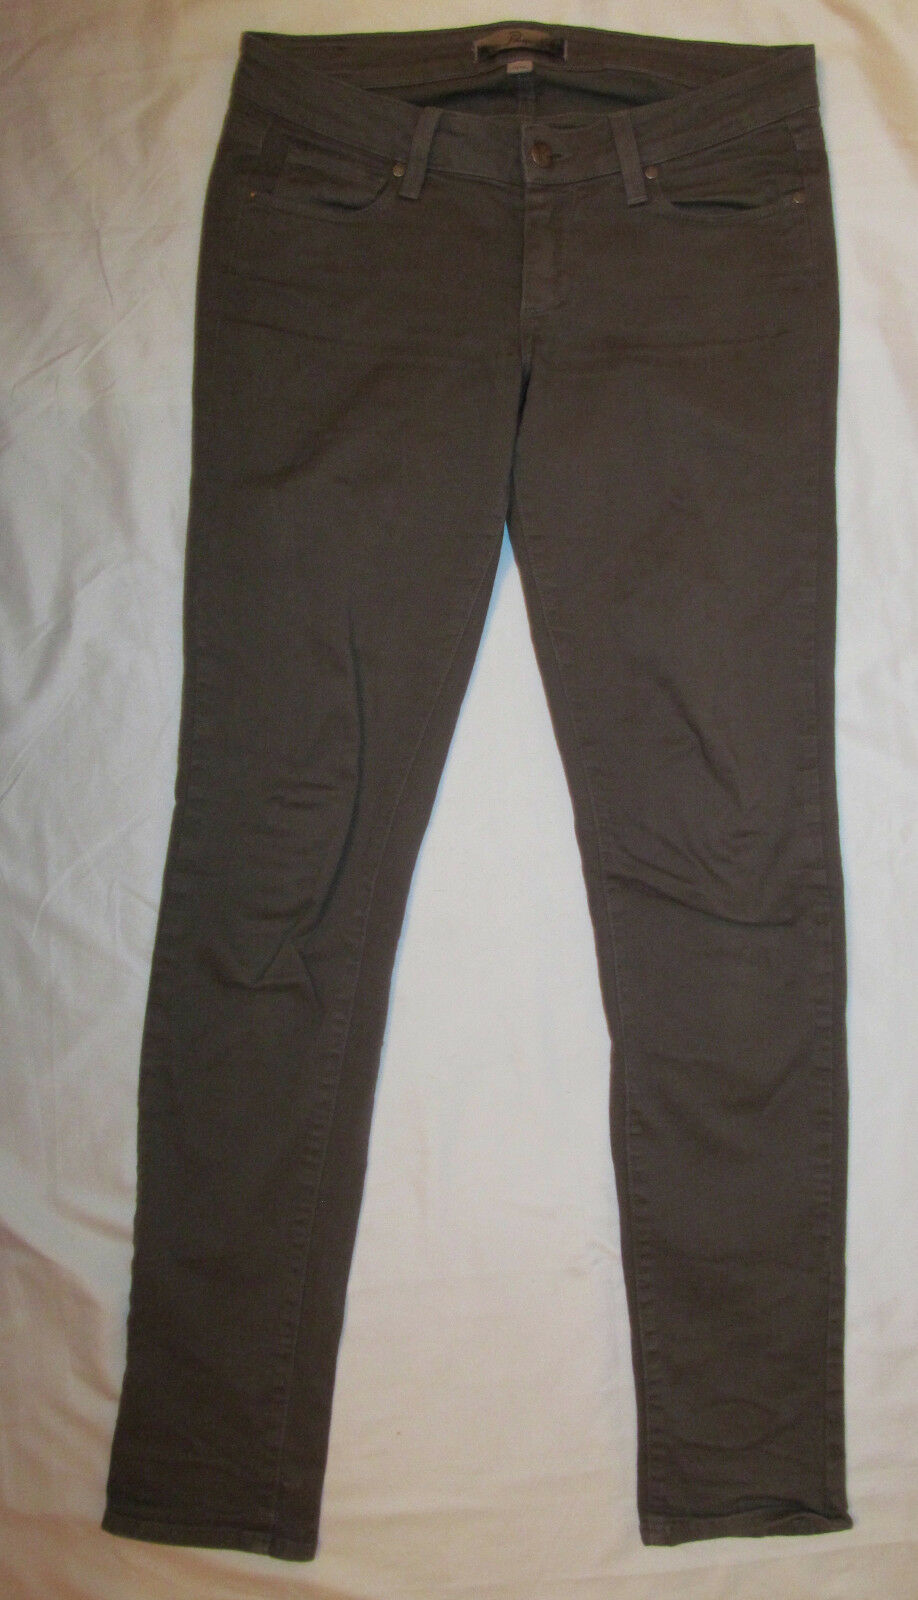 PAIGE PEG SKINNY sateen twill GREY taupe very strtchy jeans 27